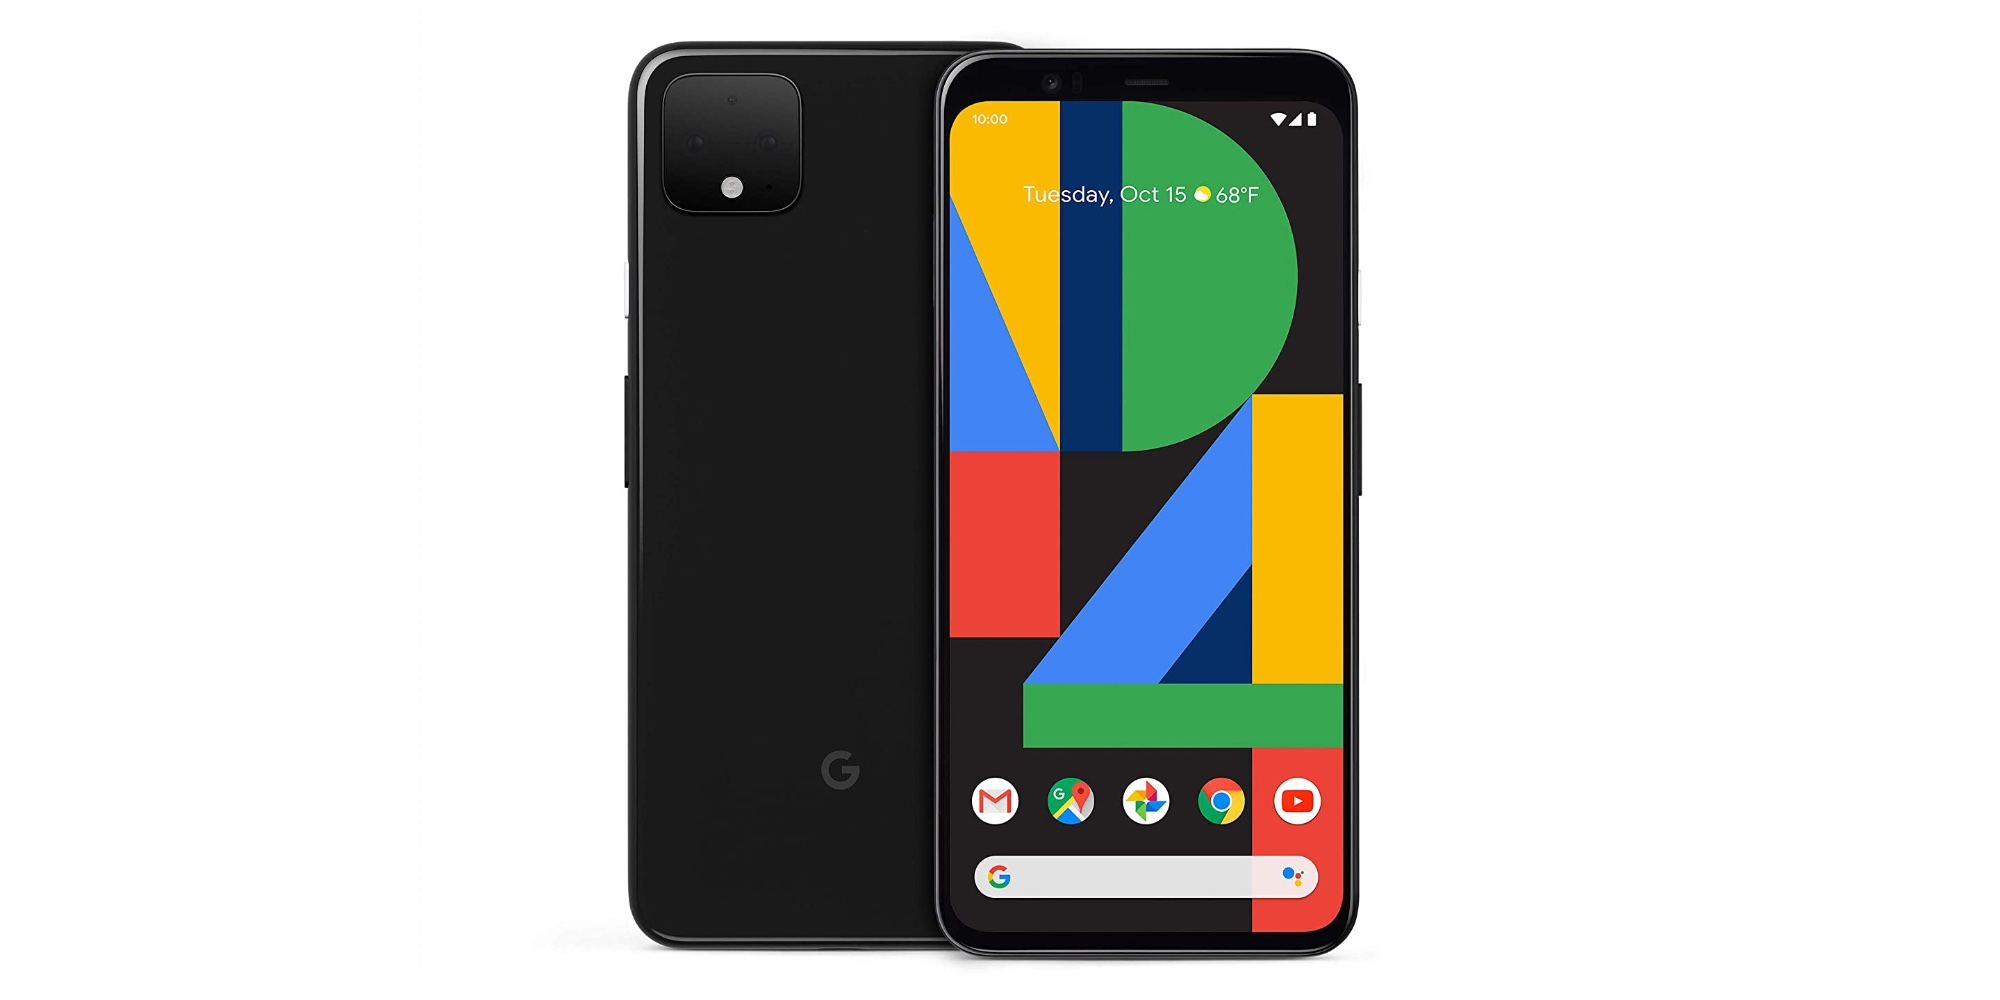 Google Pixel 4 XL 128GB drops to new Amazon all-time low at $649 (Save $350)